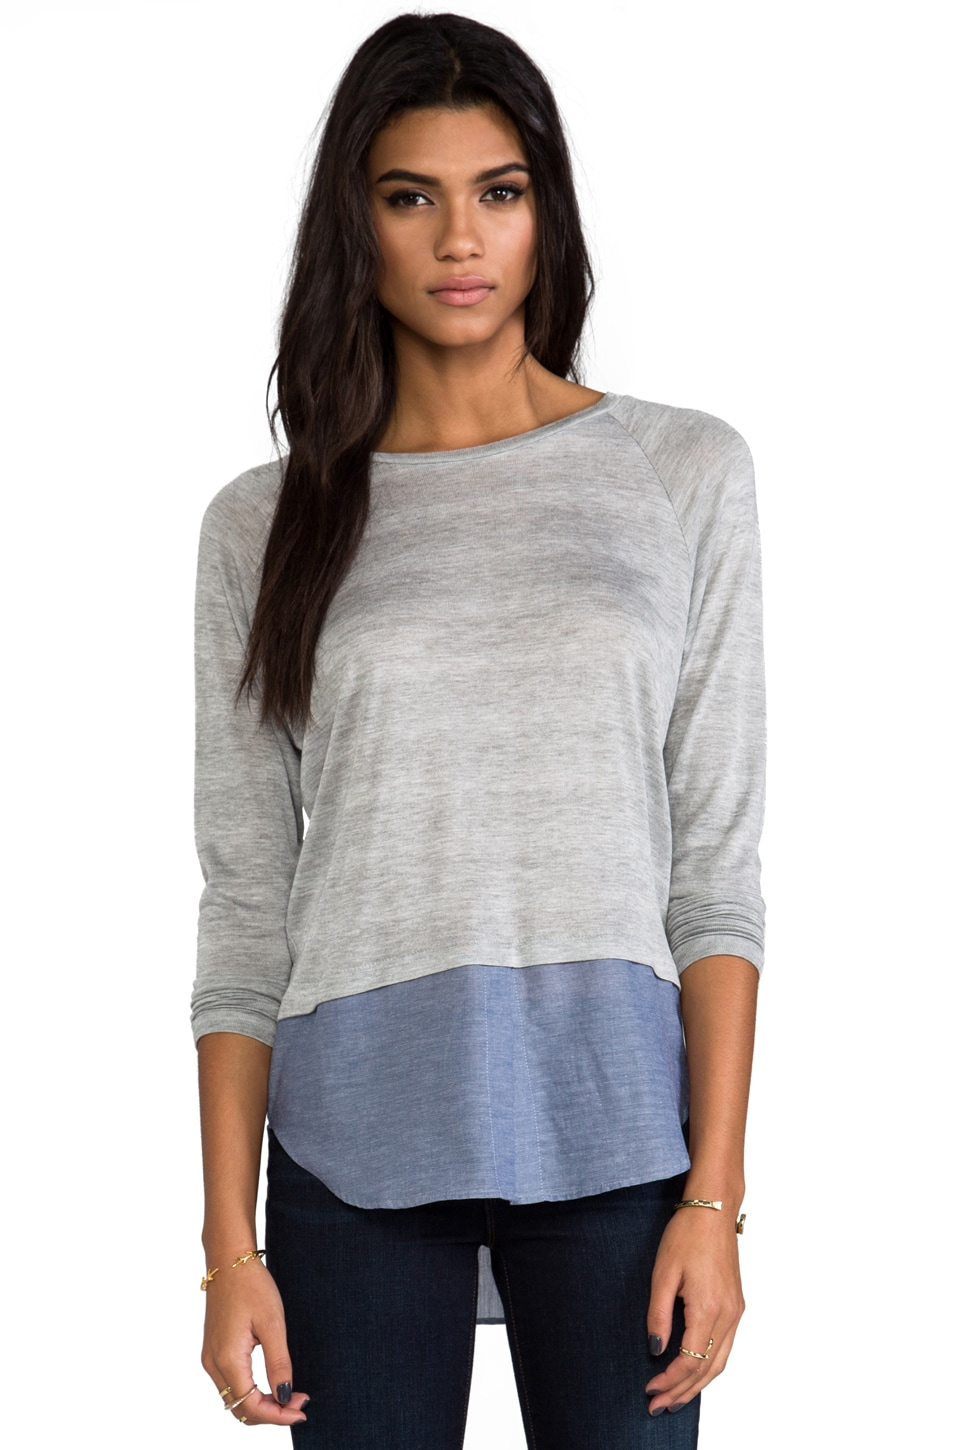 Kain Lamb Sweater in Heather Grey & Blue Chambray